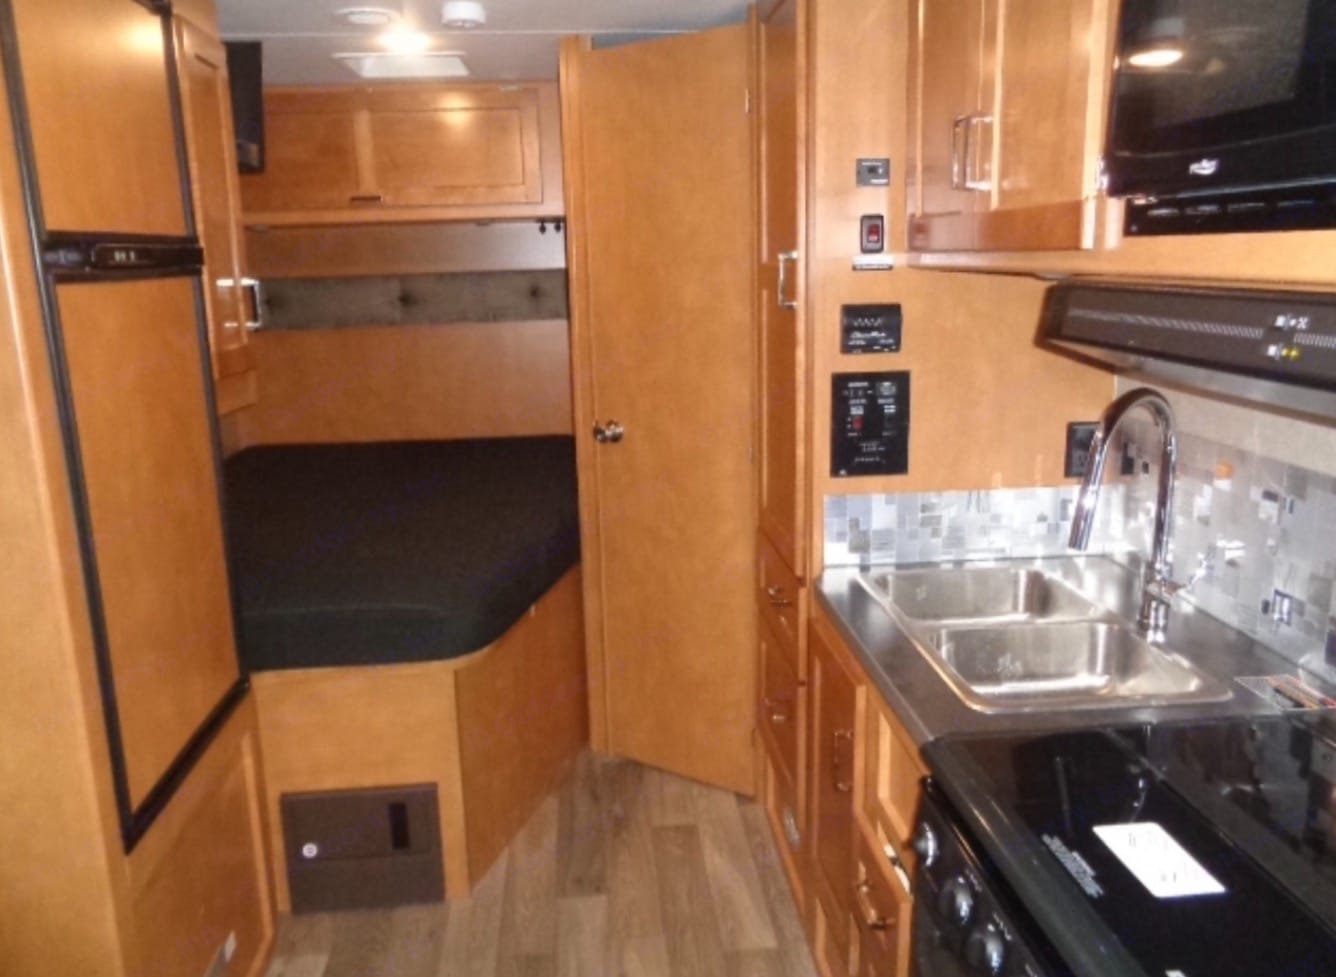 Queen bed, side view kitchenette with double sink with pull down sink/sprayer and stove/oven.. Winnebago Minnie Winnie 2019